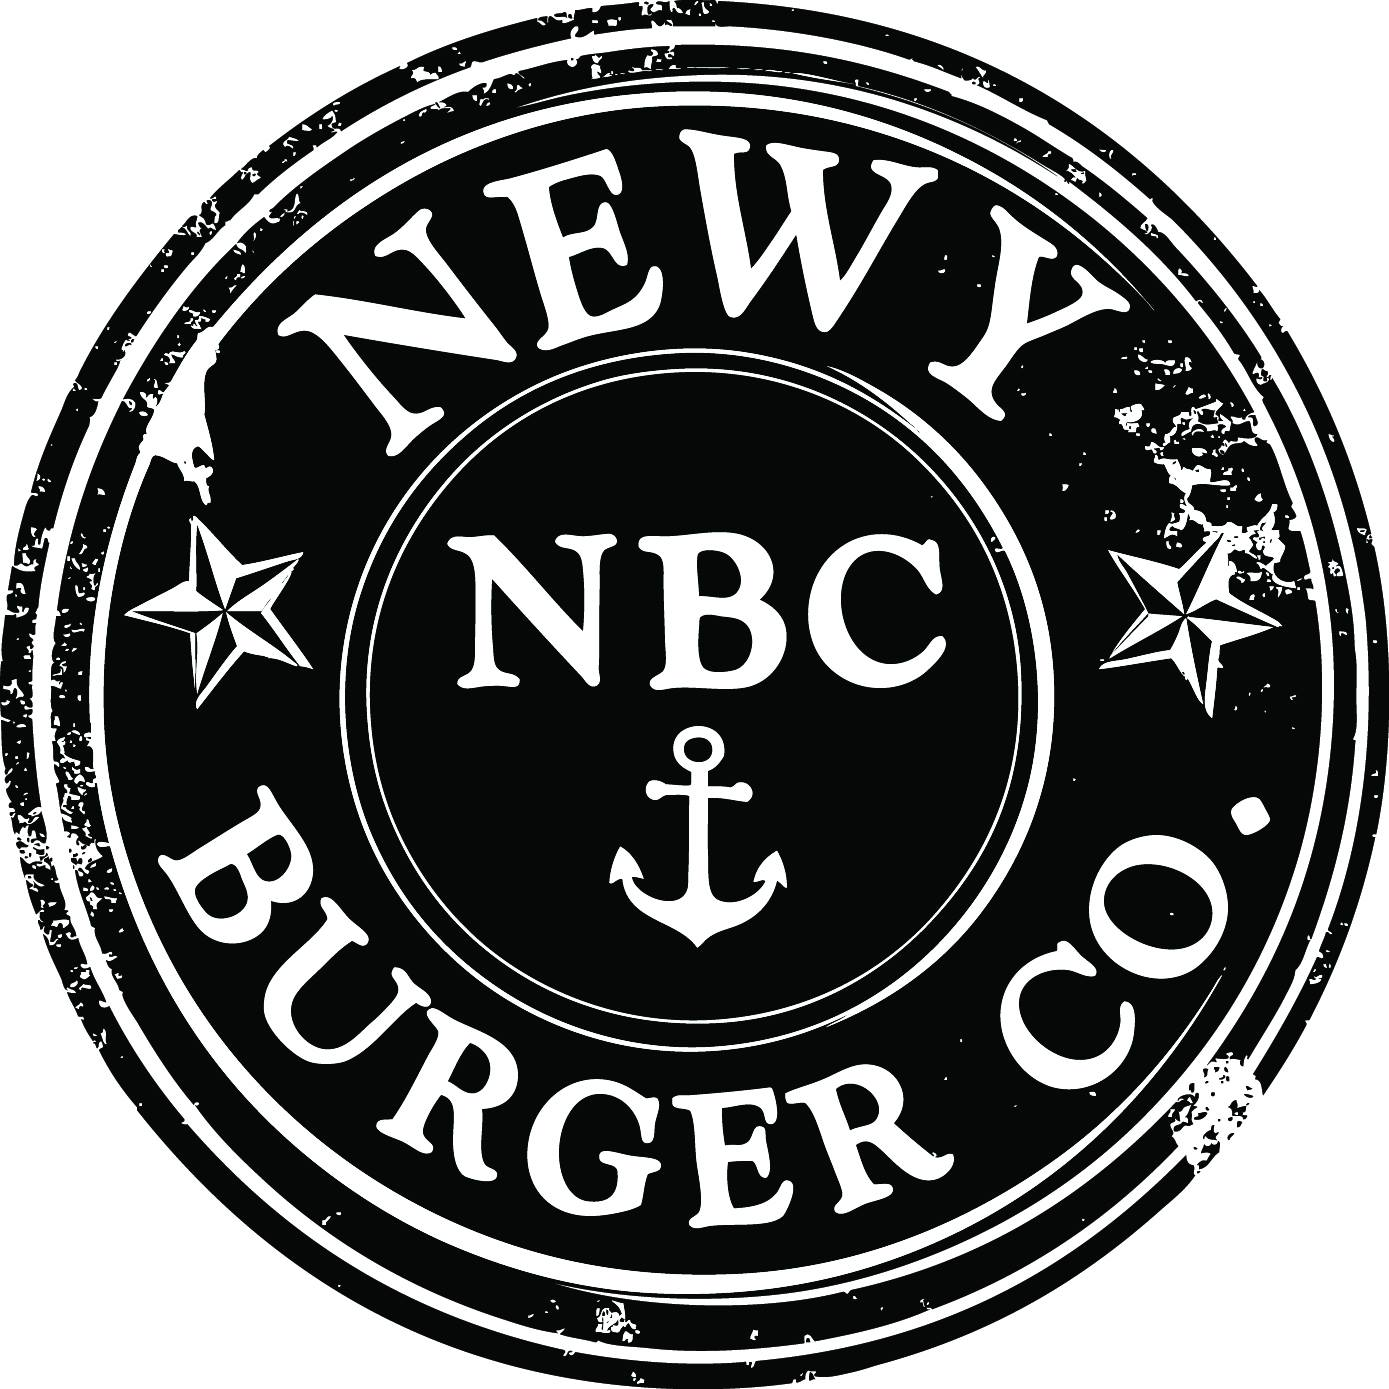 Newy Burger Co. (Newcastle)